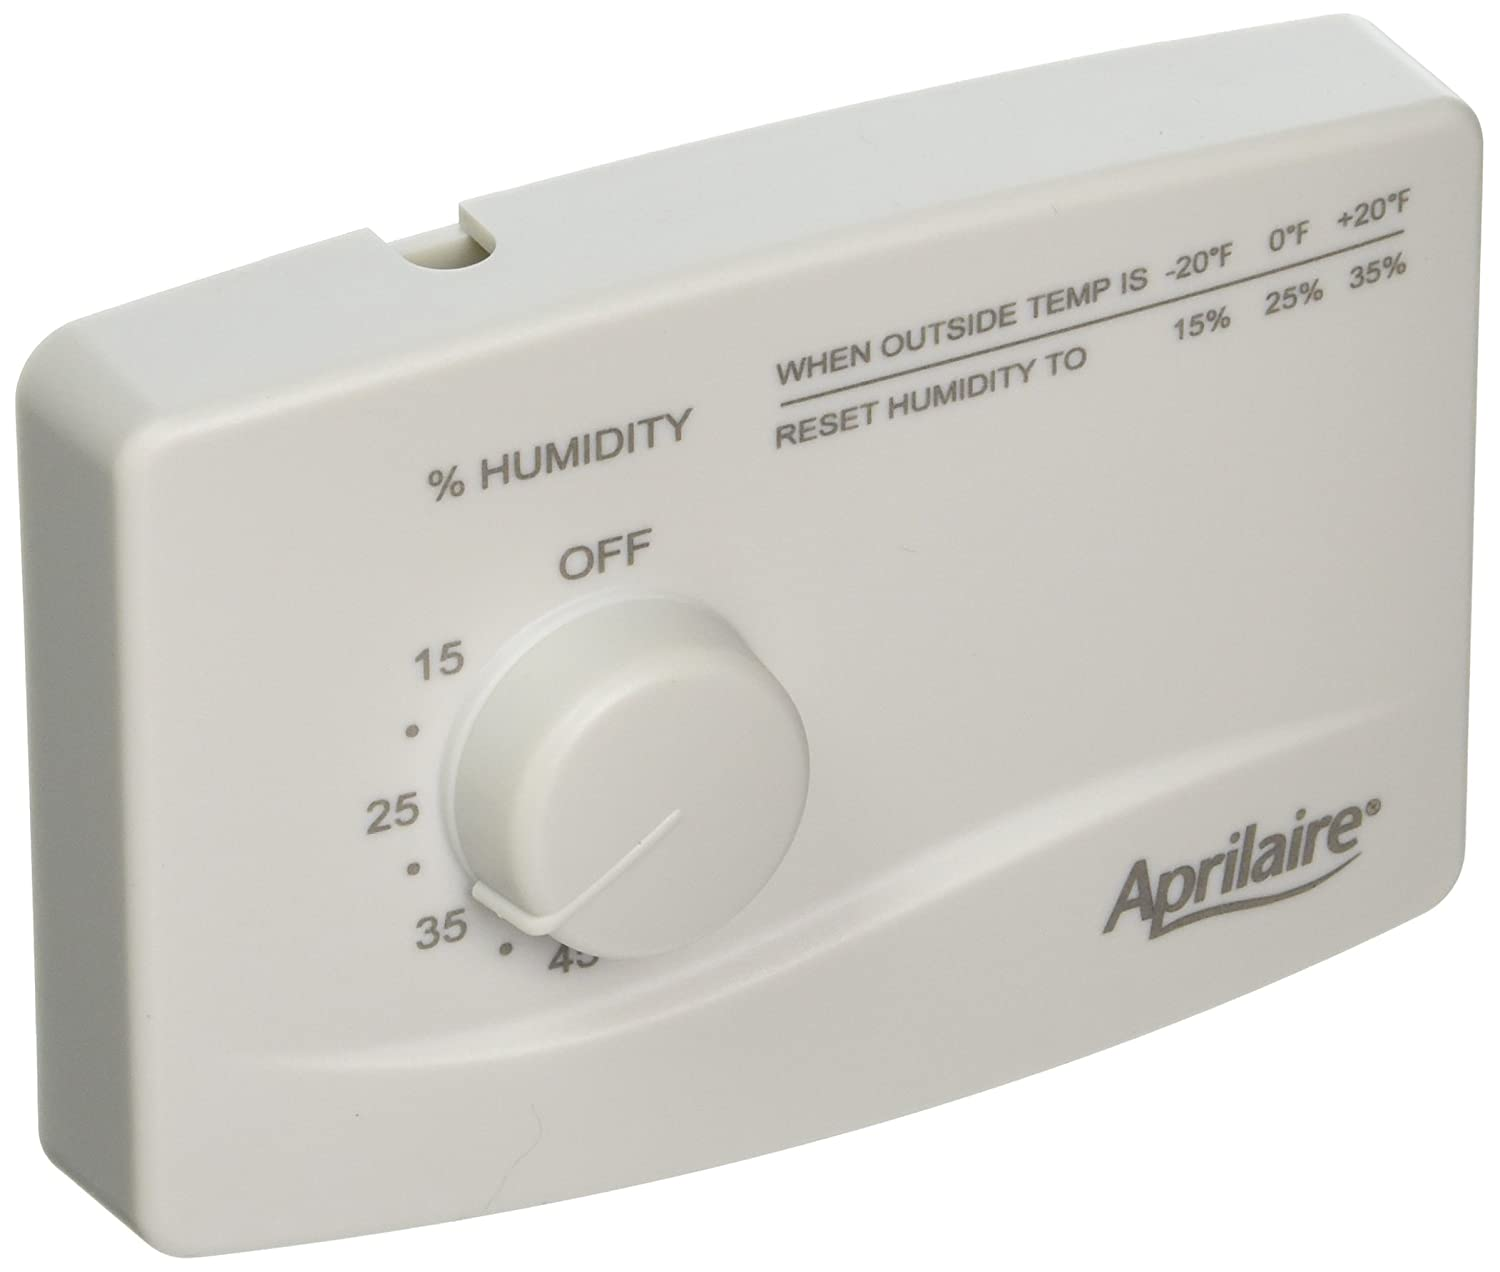 Aprilaire Humidistat 4016 Wiring - Wiring